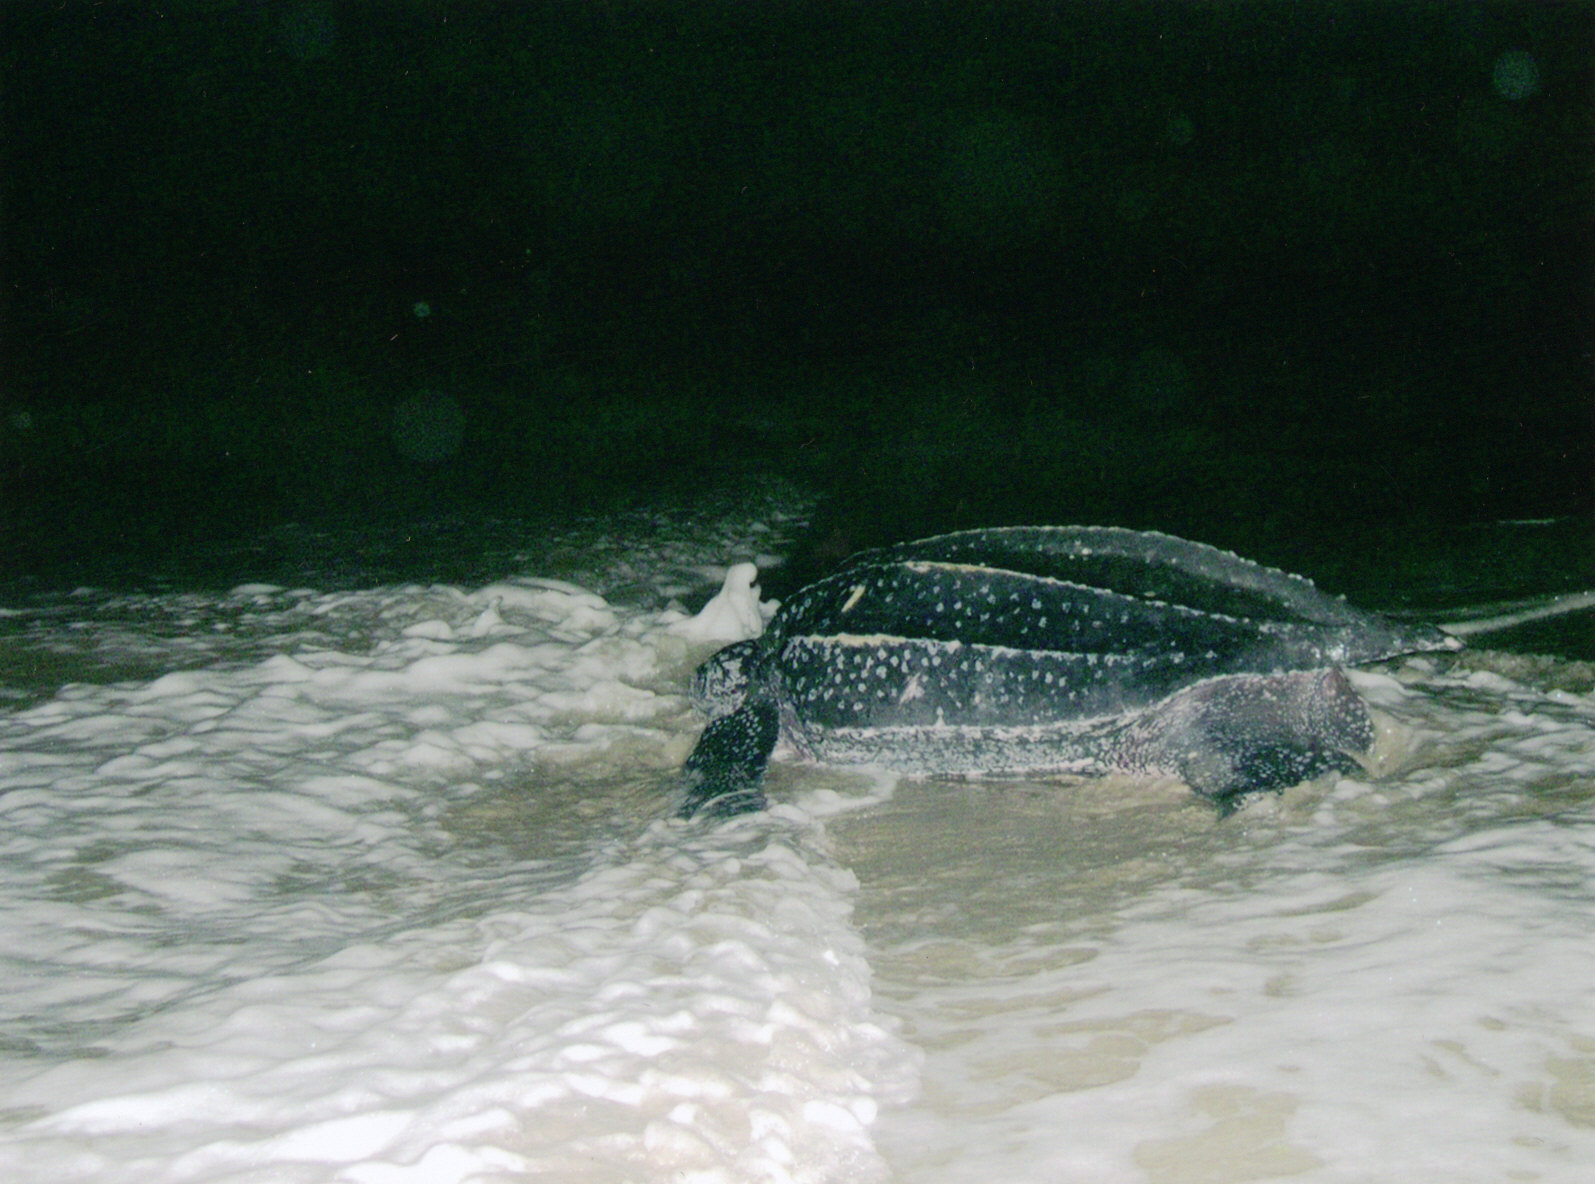 parental conflict in turtle mo essay Parental conflict in turtle mo - the parental conflict in turtle moon for the average person, occasional inter-personal conflicts are a fact of life nowhere do these conflicts manifest themselves with greater tension than in the parent-adolescent relationship.